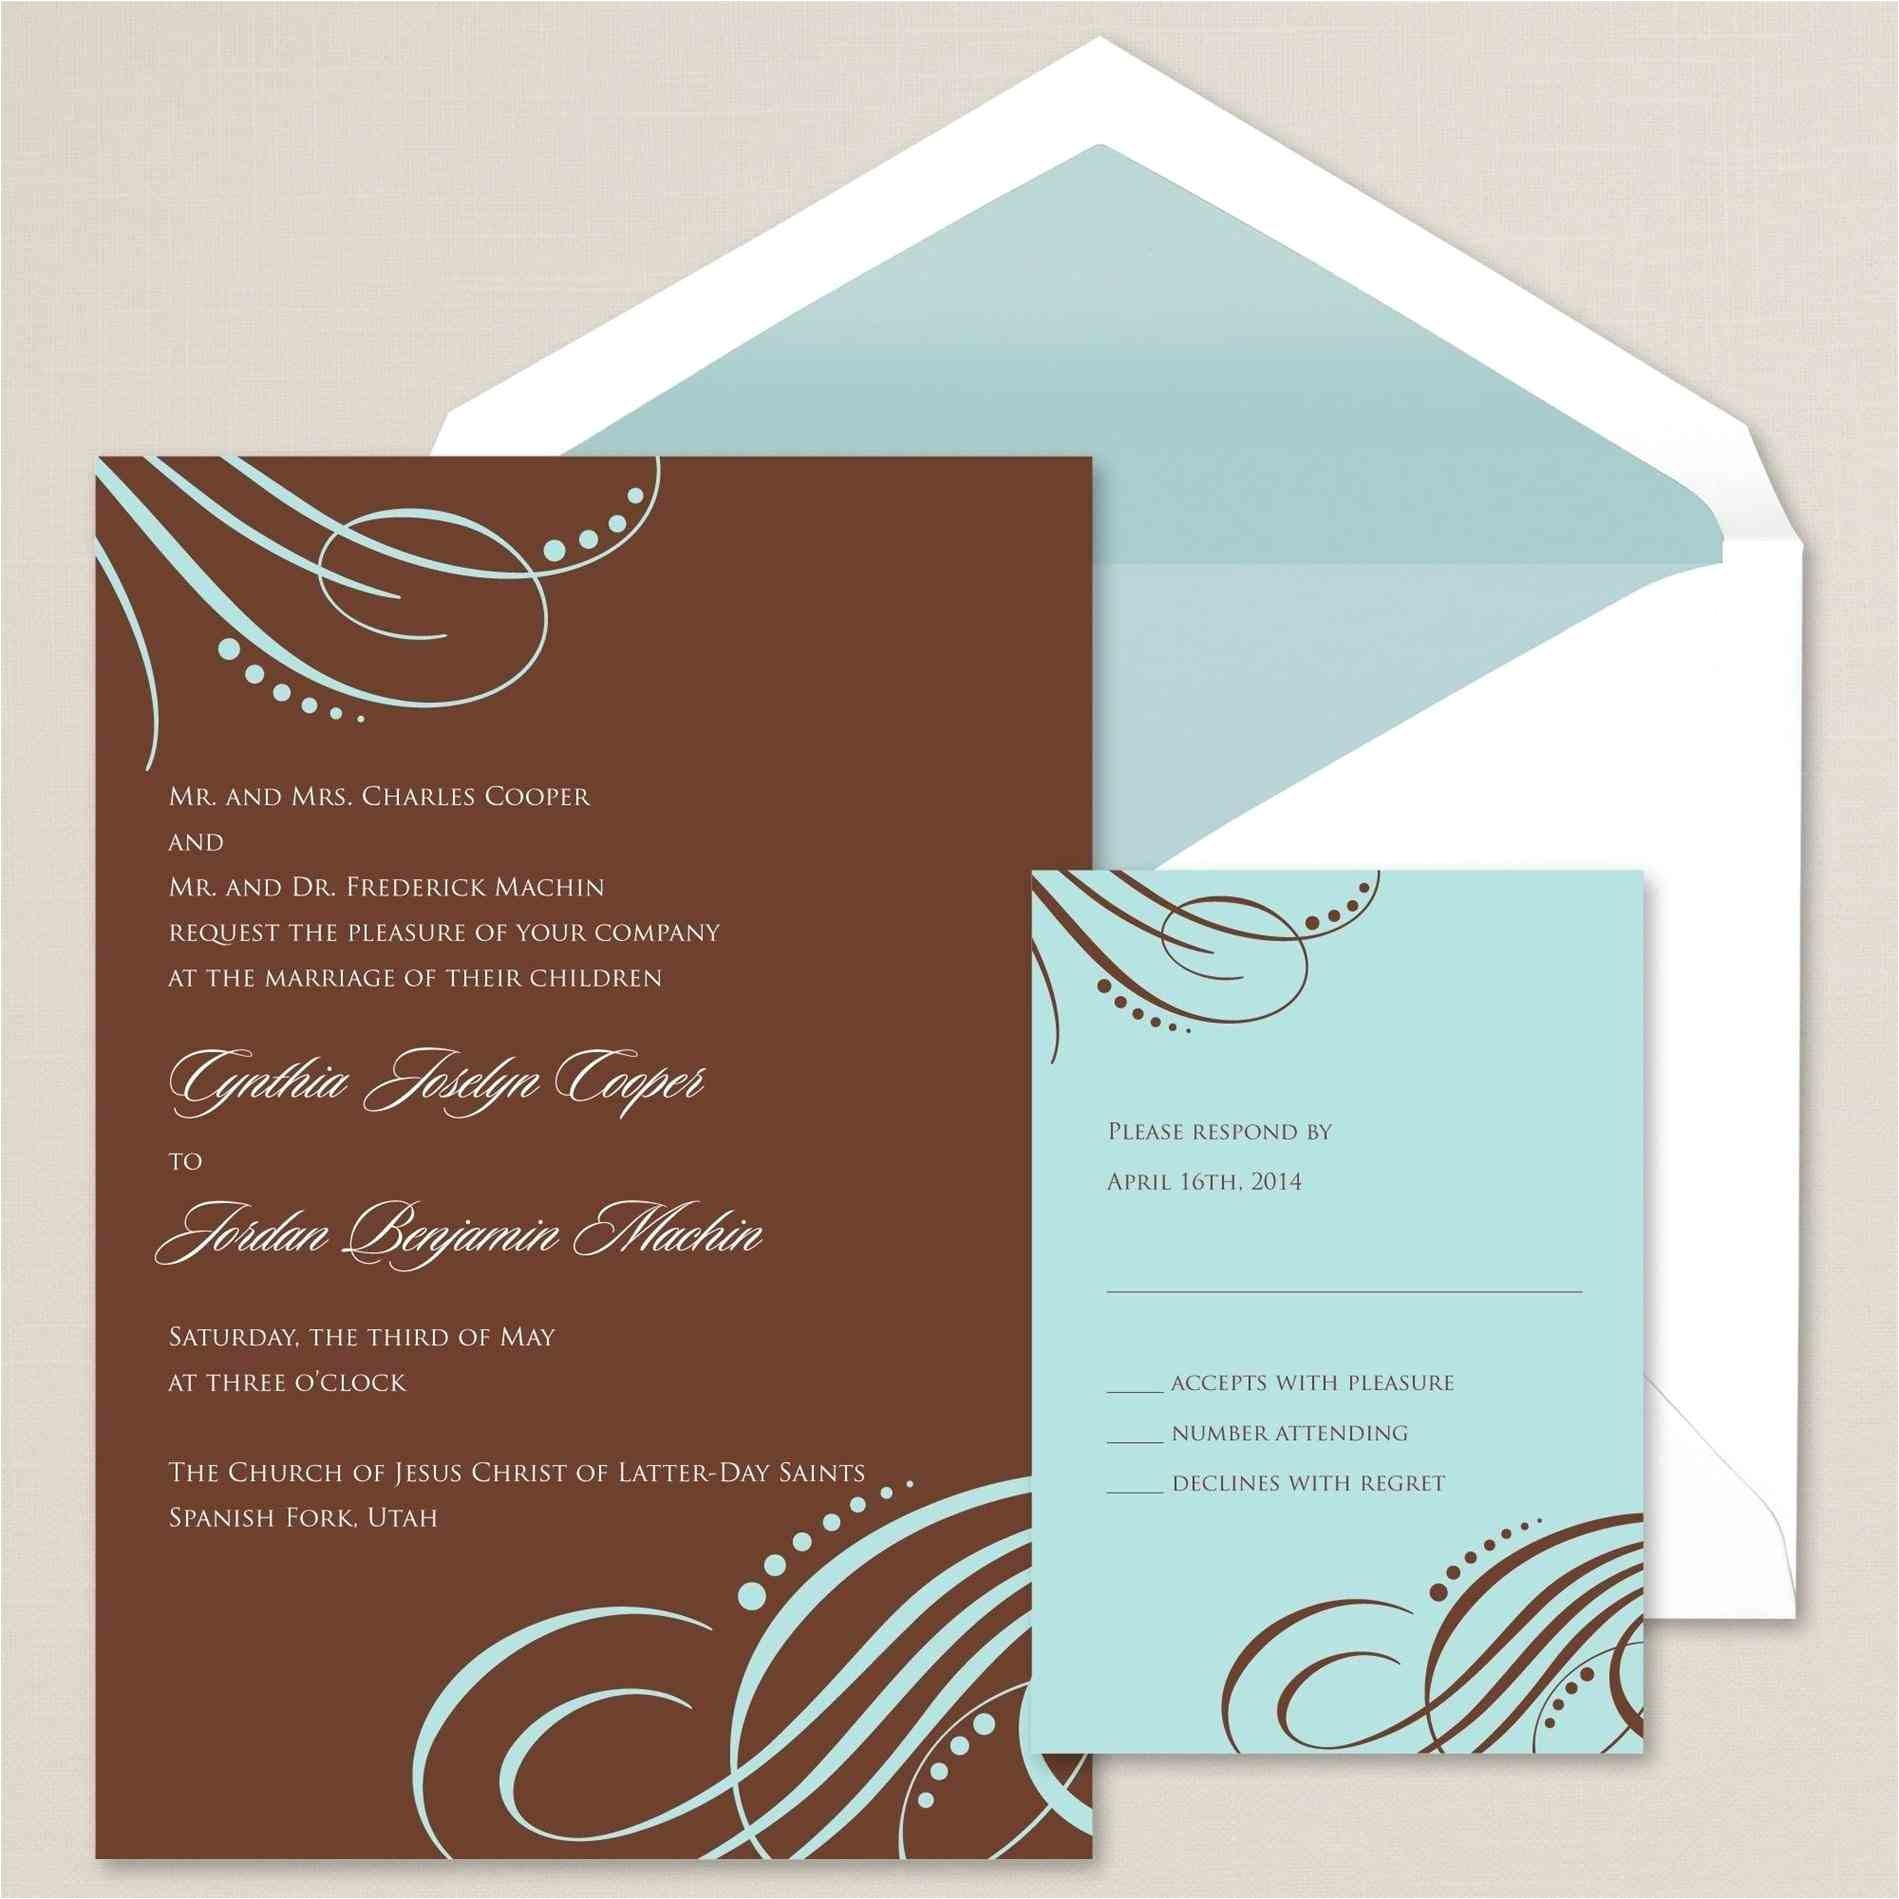 design rhhappyemacom party the future mr and mrs wedding invitation simple to engagement design rhhappyemacom gold jpg